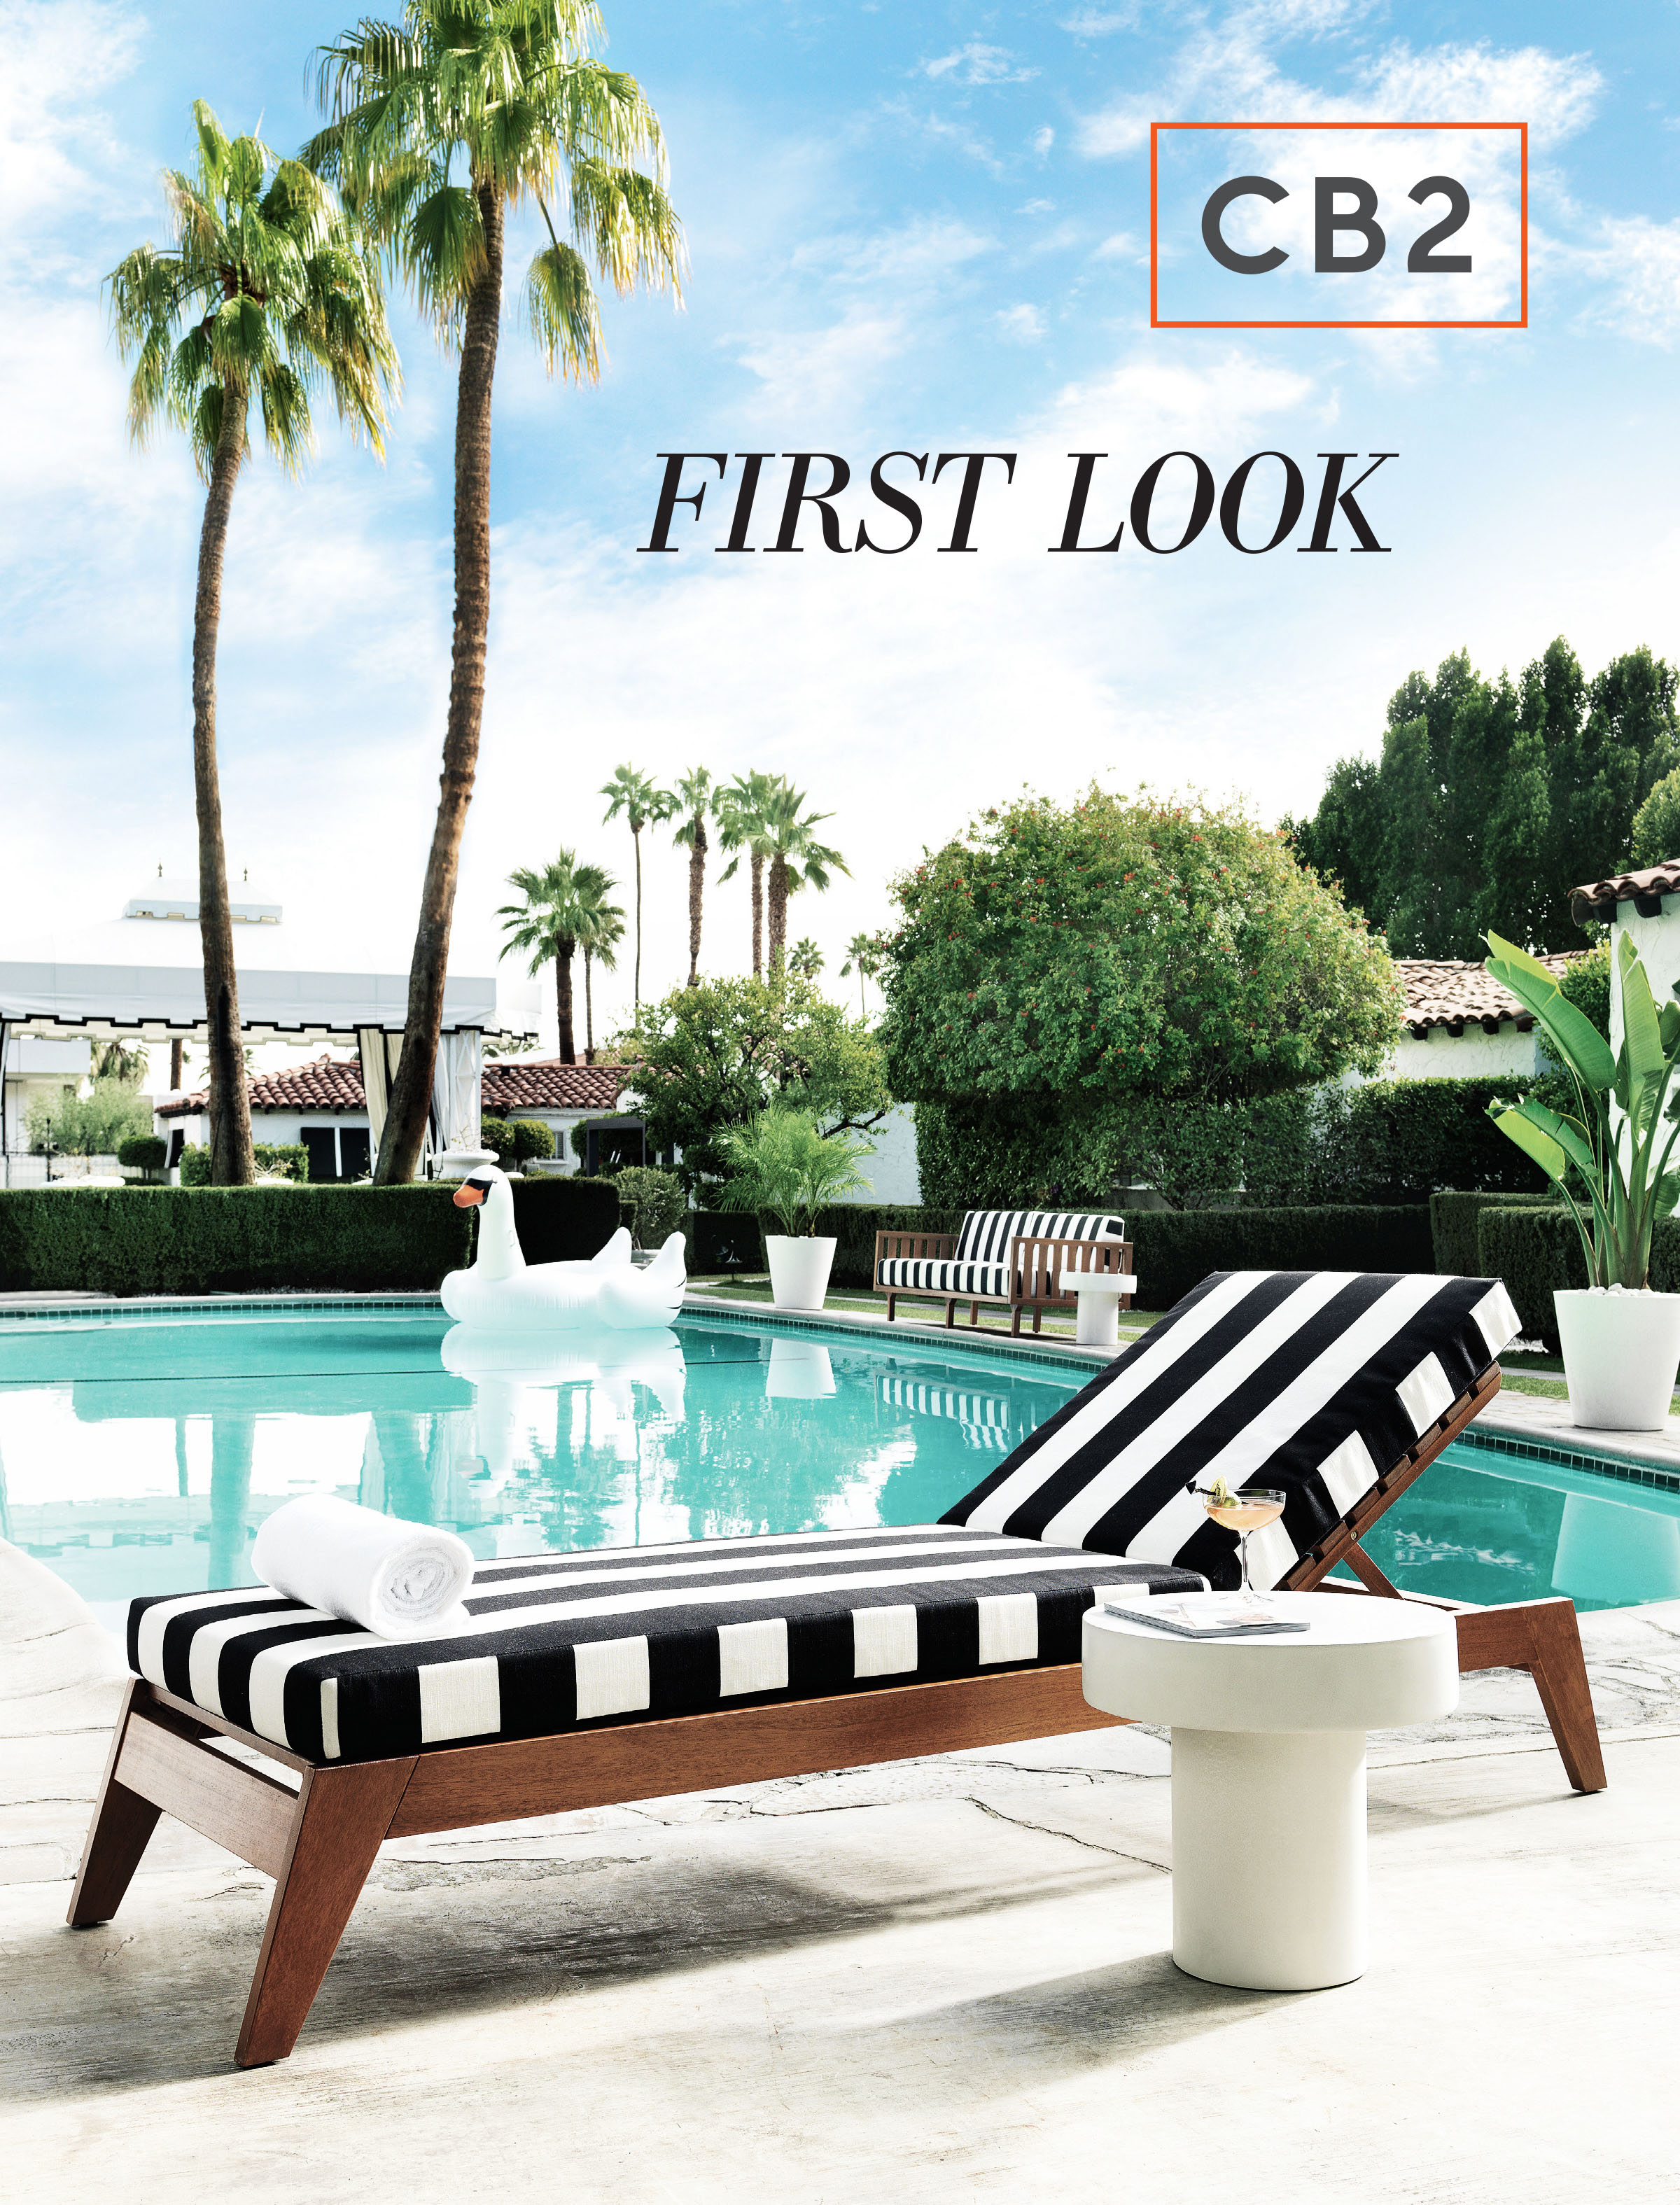 cb2-first-look-summer-2016-1copy